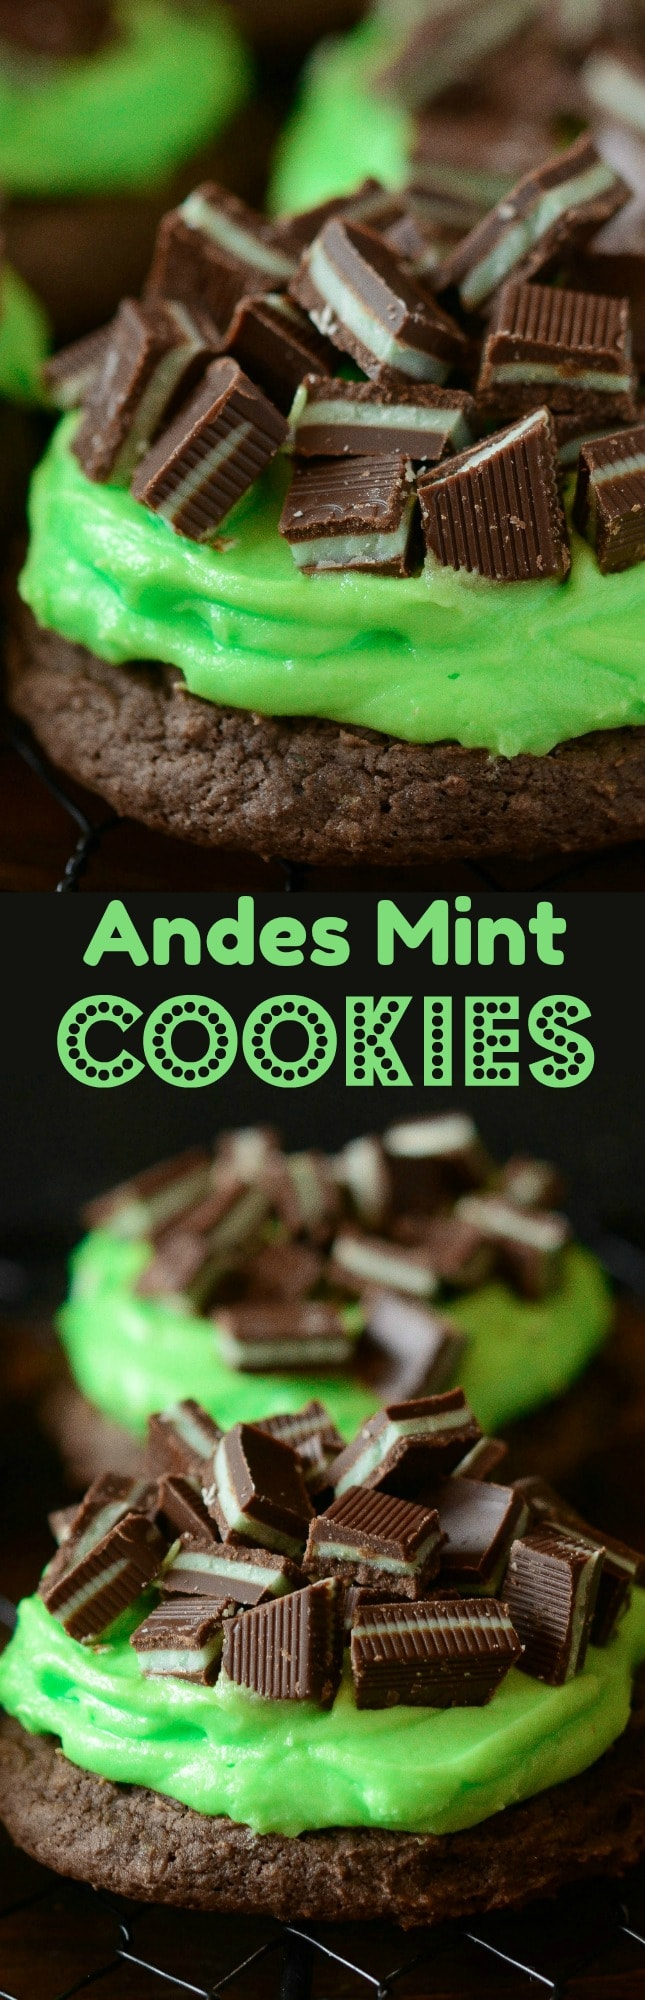 ANDES MINT COOKIES: soft dark chocolate cookies are frosted with mint buttercream frosting and topped with Andes Mints to create the best mint cookie, ever!